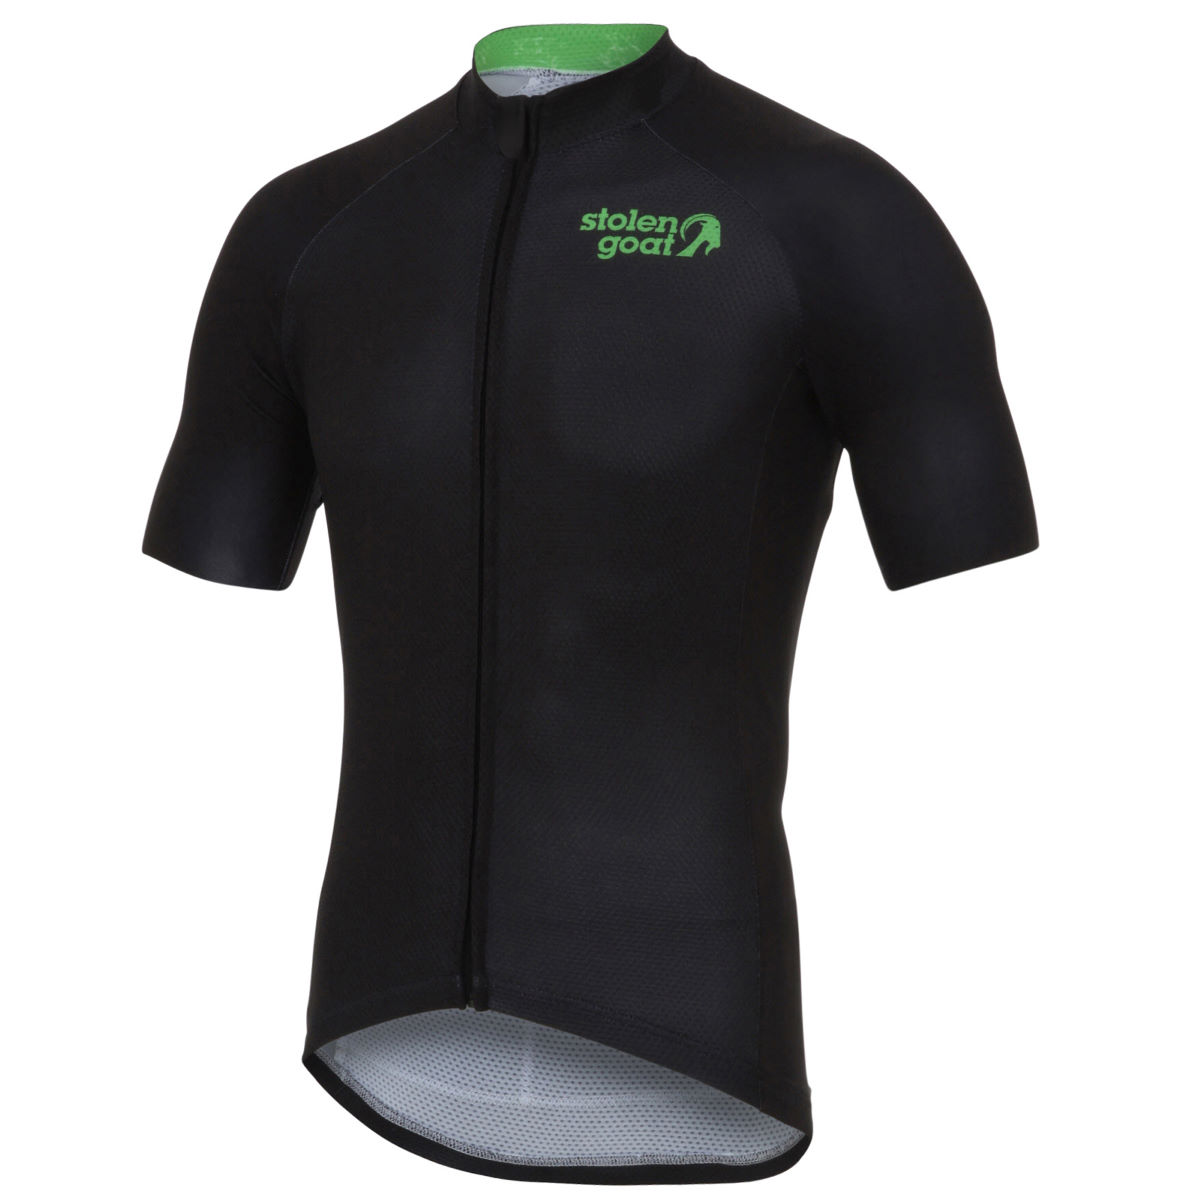 Maillot Stolen Goat Bodyline Core (manches courtes) - L Core Black